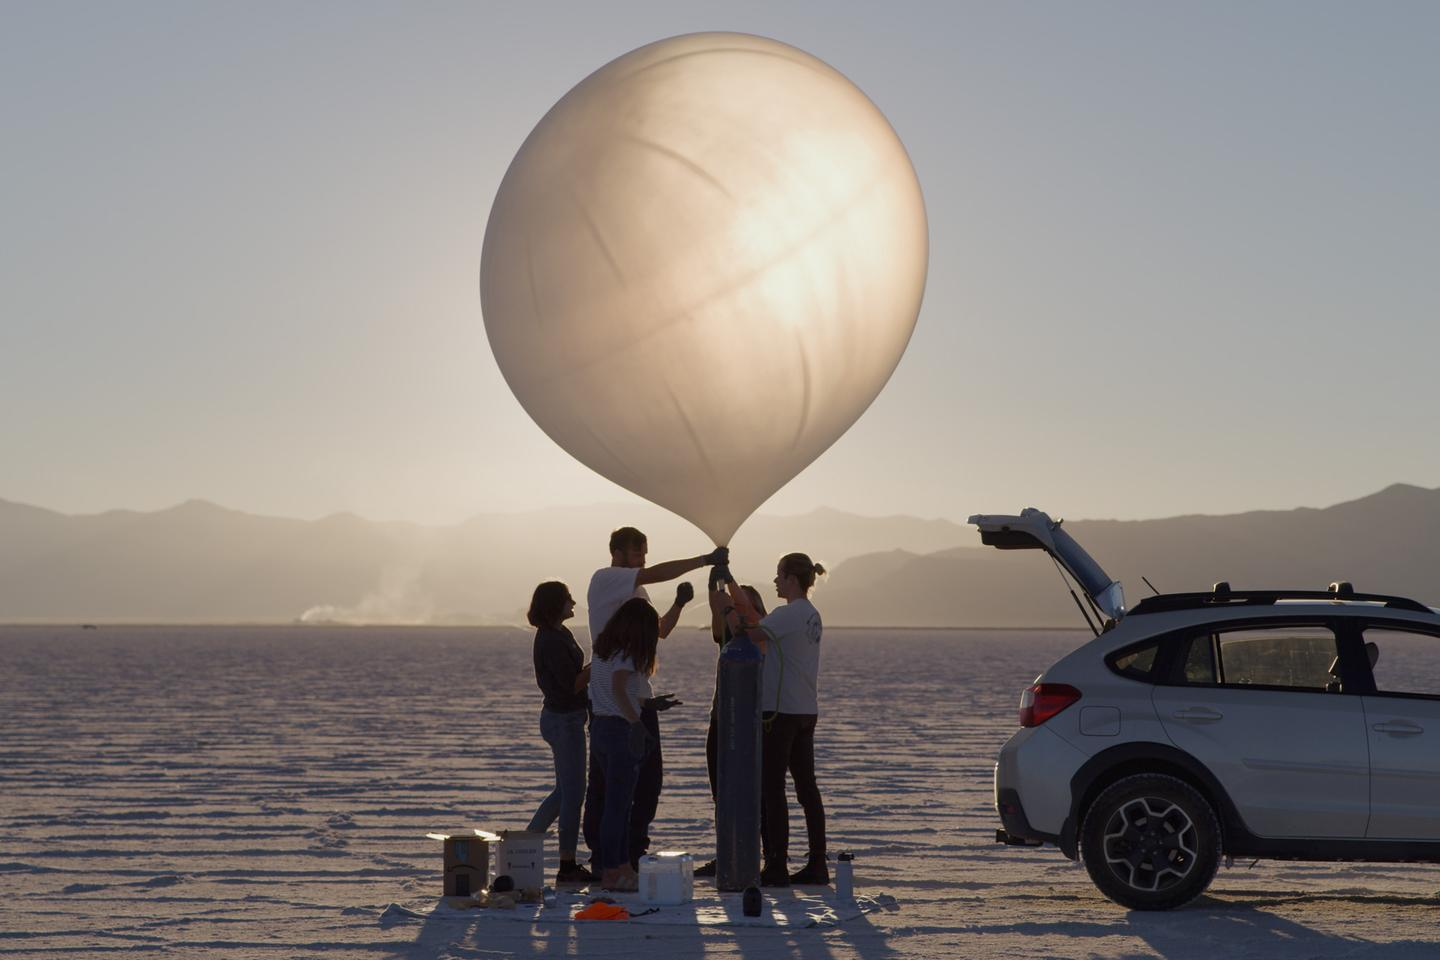 Spaceloon hopes its patent-pending balloon technology will shed light on the mesosphere